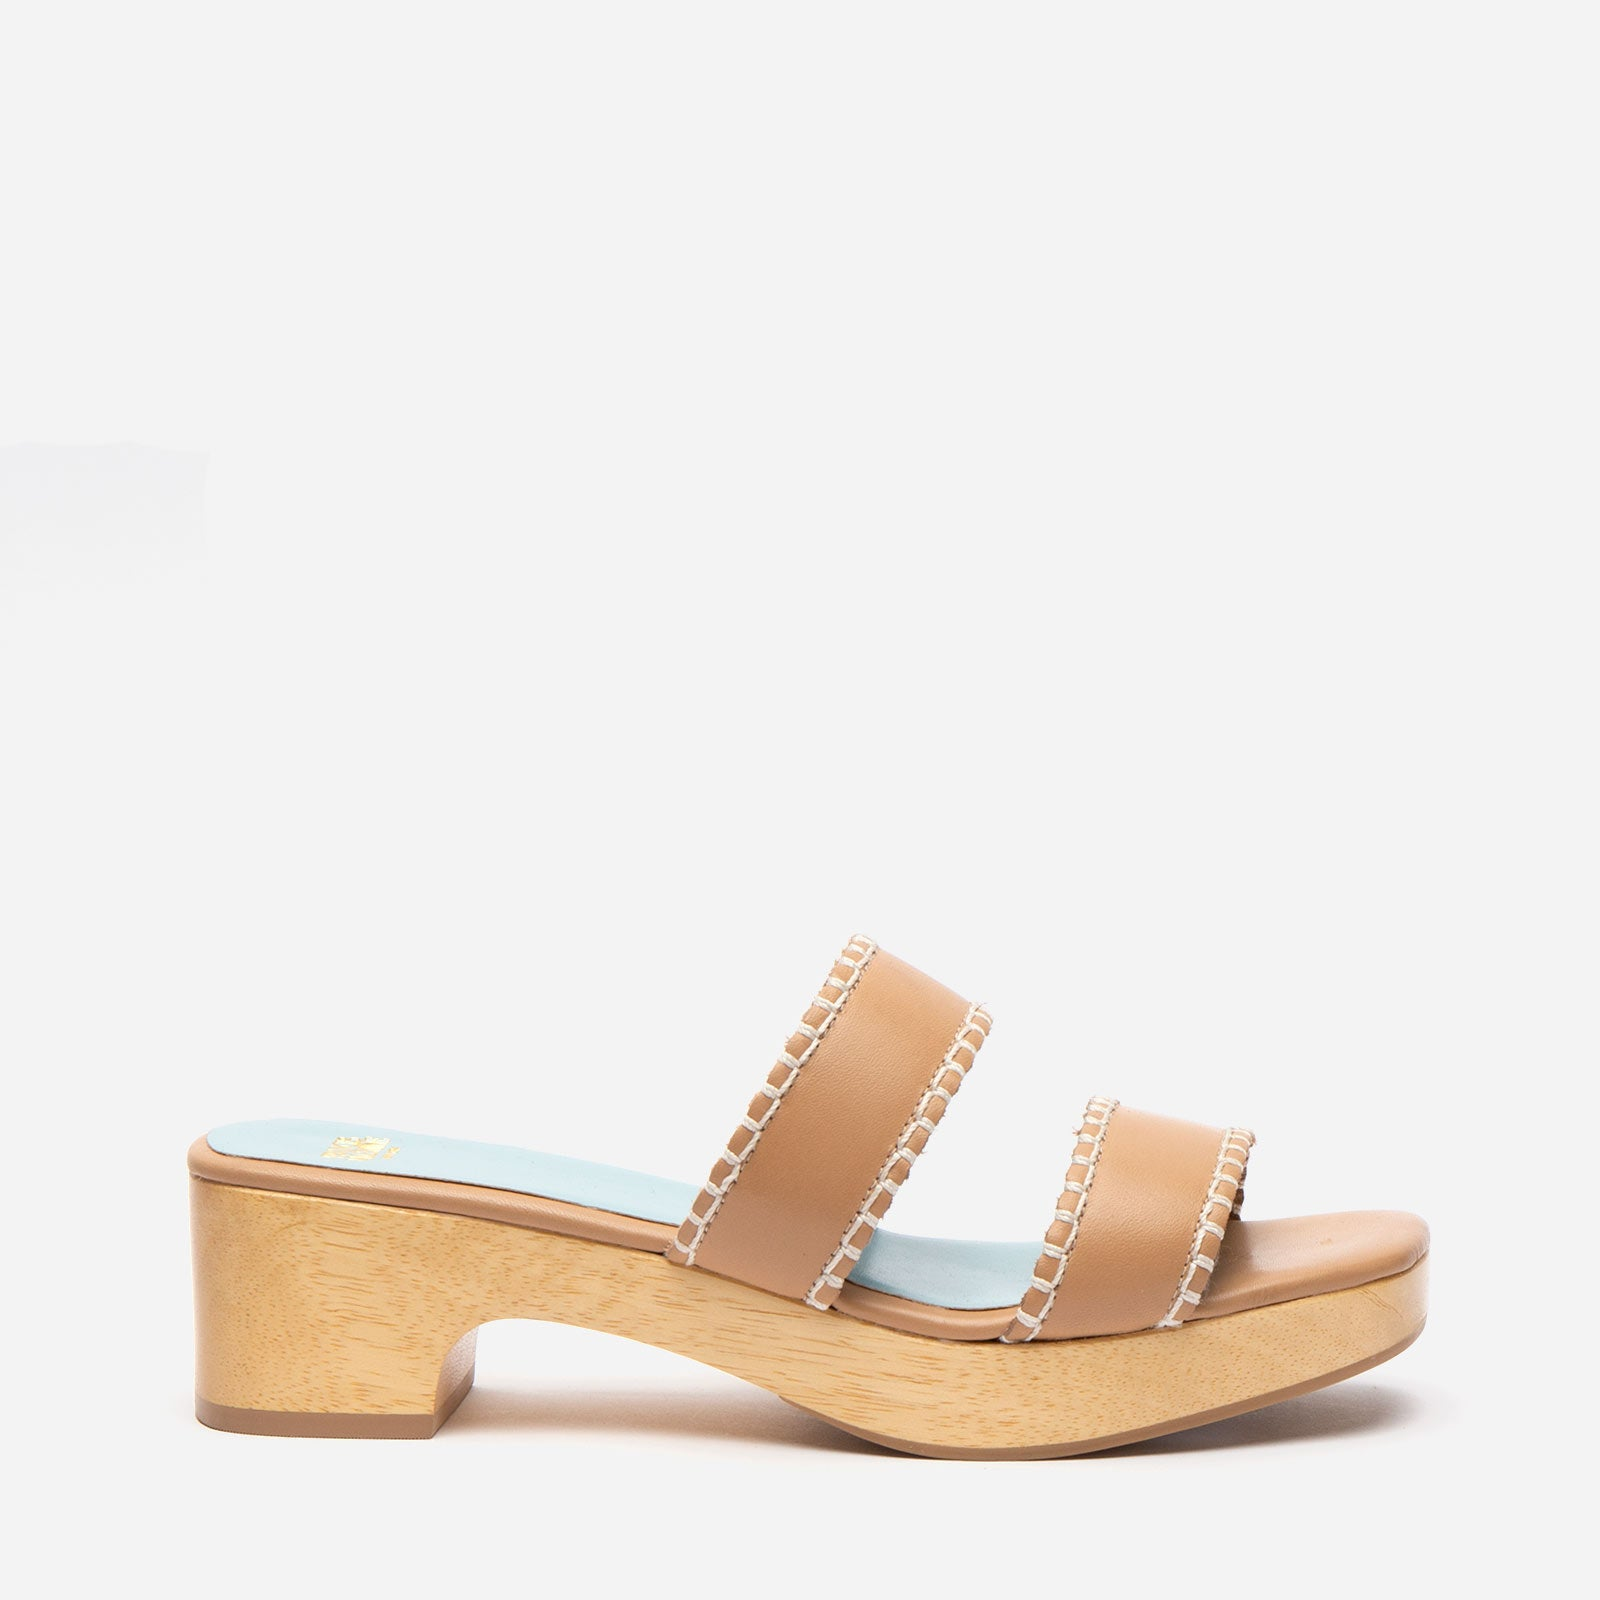 Wooden Slide Sandal Vachetta Leather Natural - Frances Valentine